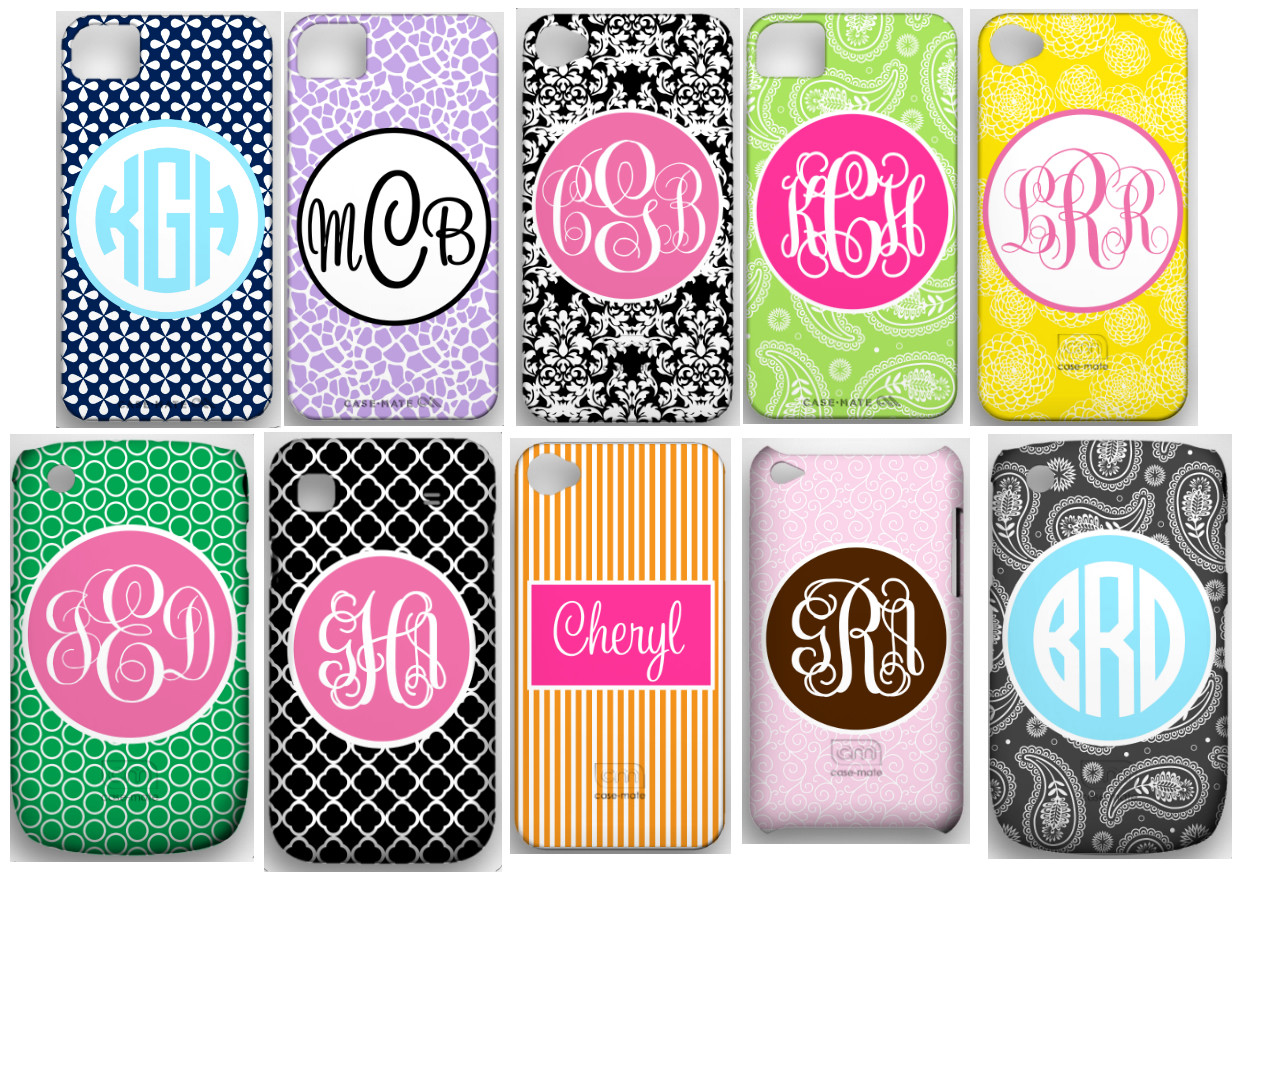 Personalized iphone, blackberry Covers ~ Monogrammed Cell Phone Case